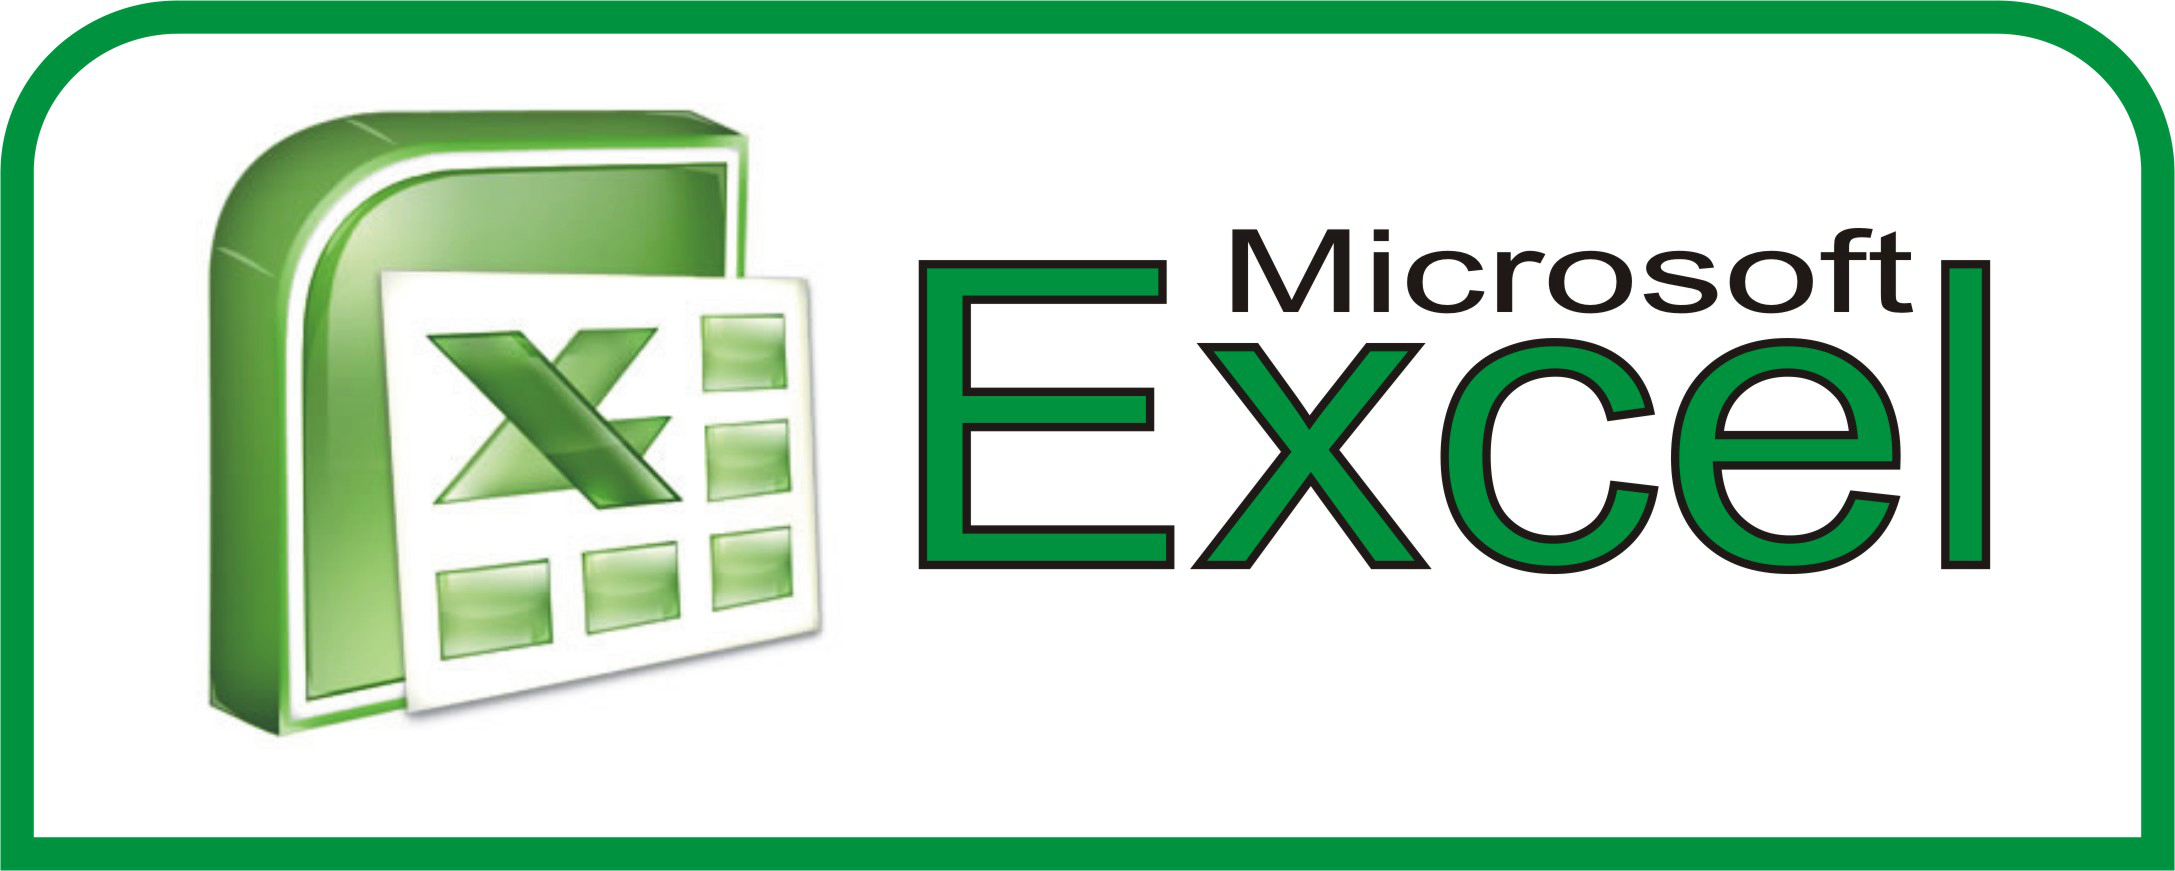 Ediblewildsus  Ravishing  Excel Shortcuts You Probably Didnt Know About  Techdissected With Entrancing Excel Ener Besides How To Add  In Excel Furthermore Excel Formula Basics With Charming How To Convert Access To Excel Also Dashboards Excel In Addition Excel Columns Function And Excel T Value As Well As Excel  Drop Down Additionally Excel File Password From Techdissectedcom With Ediblewildsus  Entrancing  Excel Shortcuts You Probably Didnt Know About  Techdissected With Charming Excel Ener Besides How To Add  In Excel Furthermore Excel Formula Basics And Ravishing How To Convert Access To Excel Also Dashboards Excel In Addition Excel Columns Function From Techdissectedcom